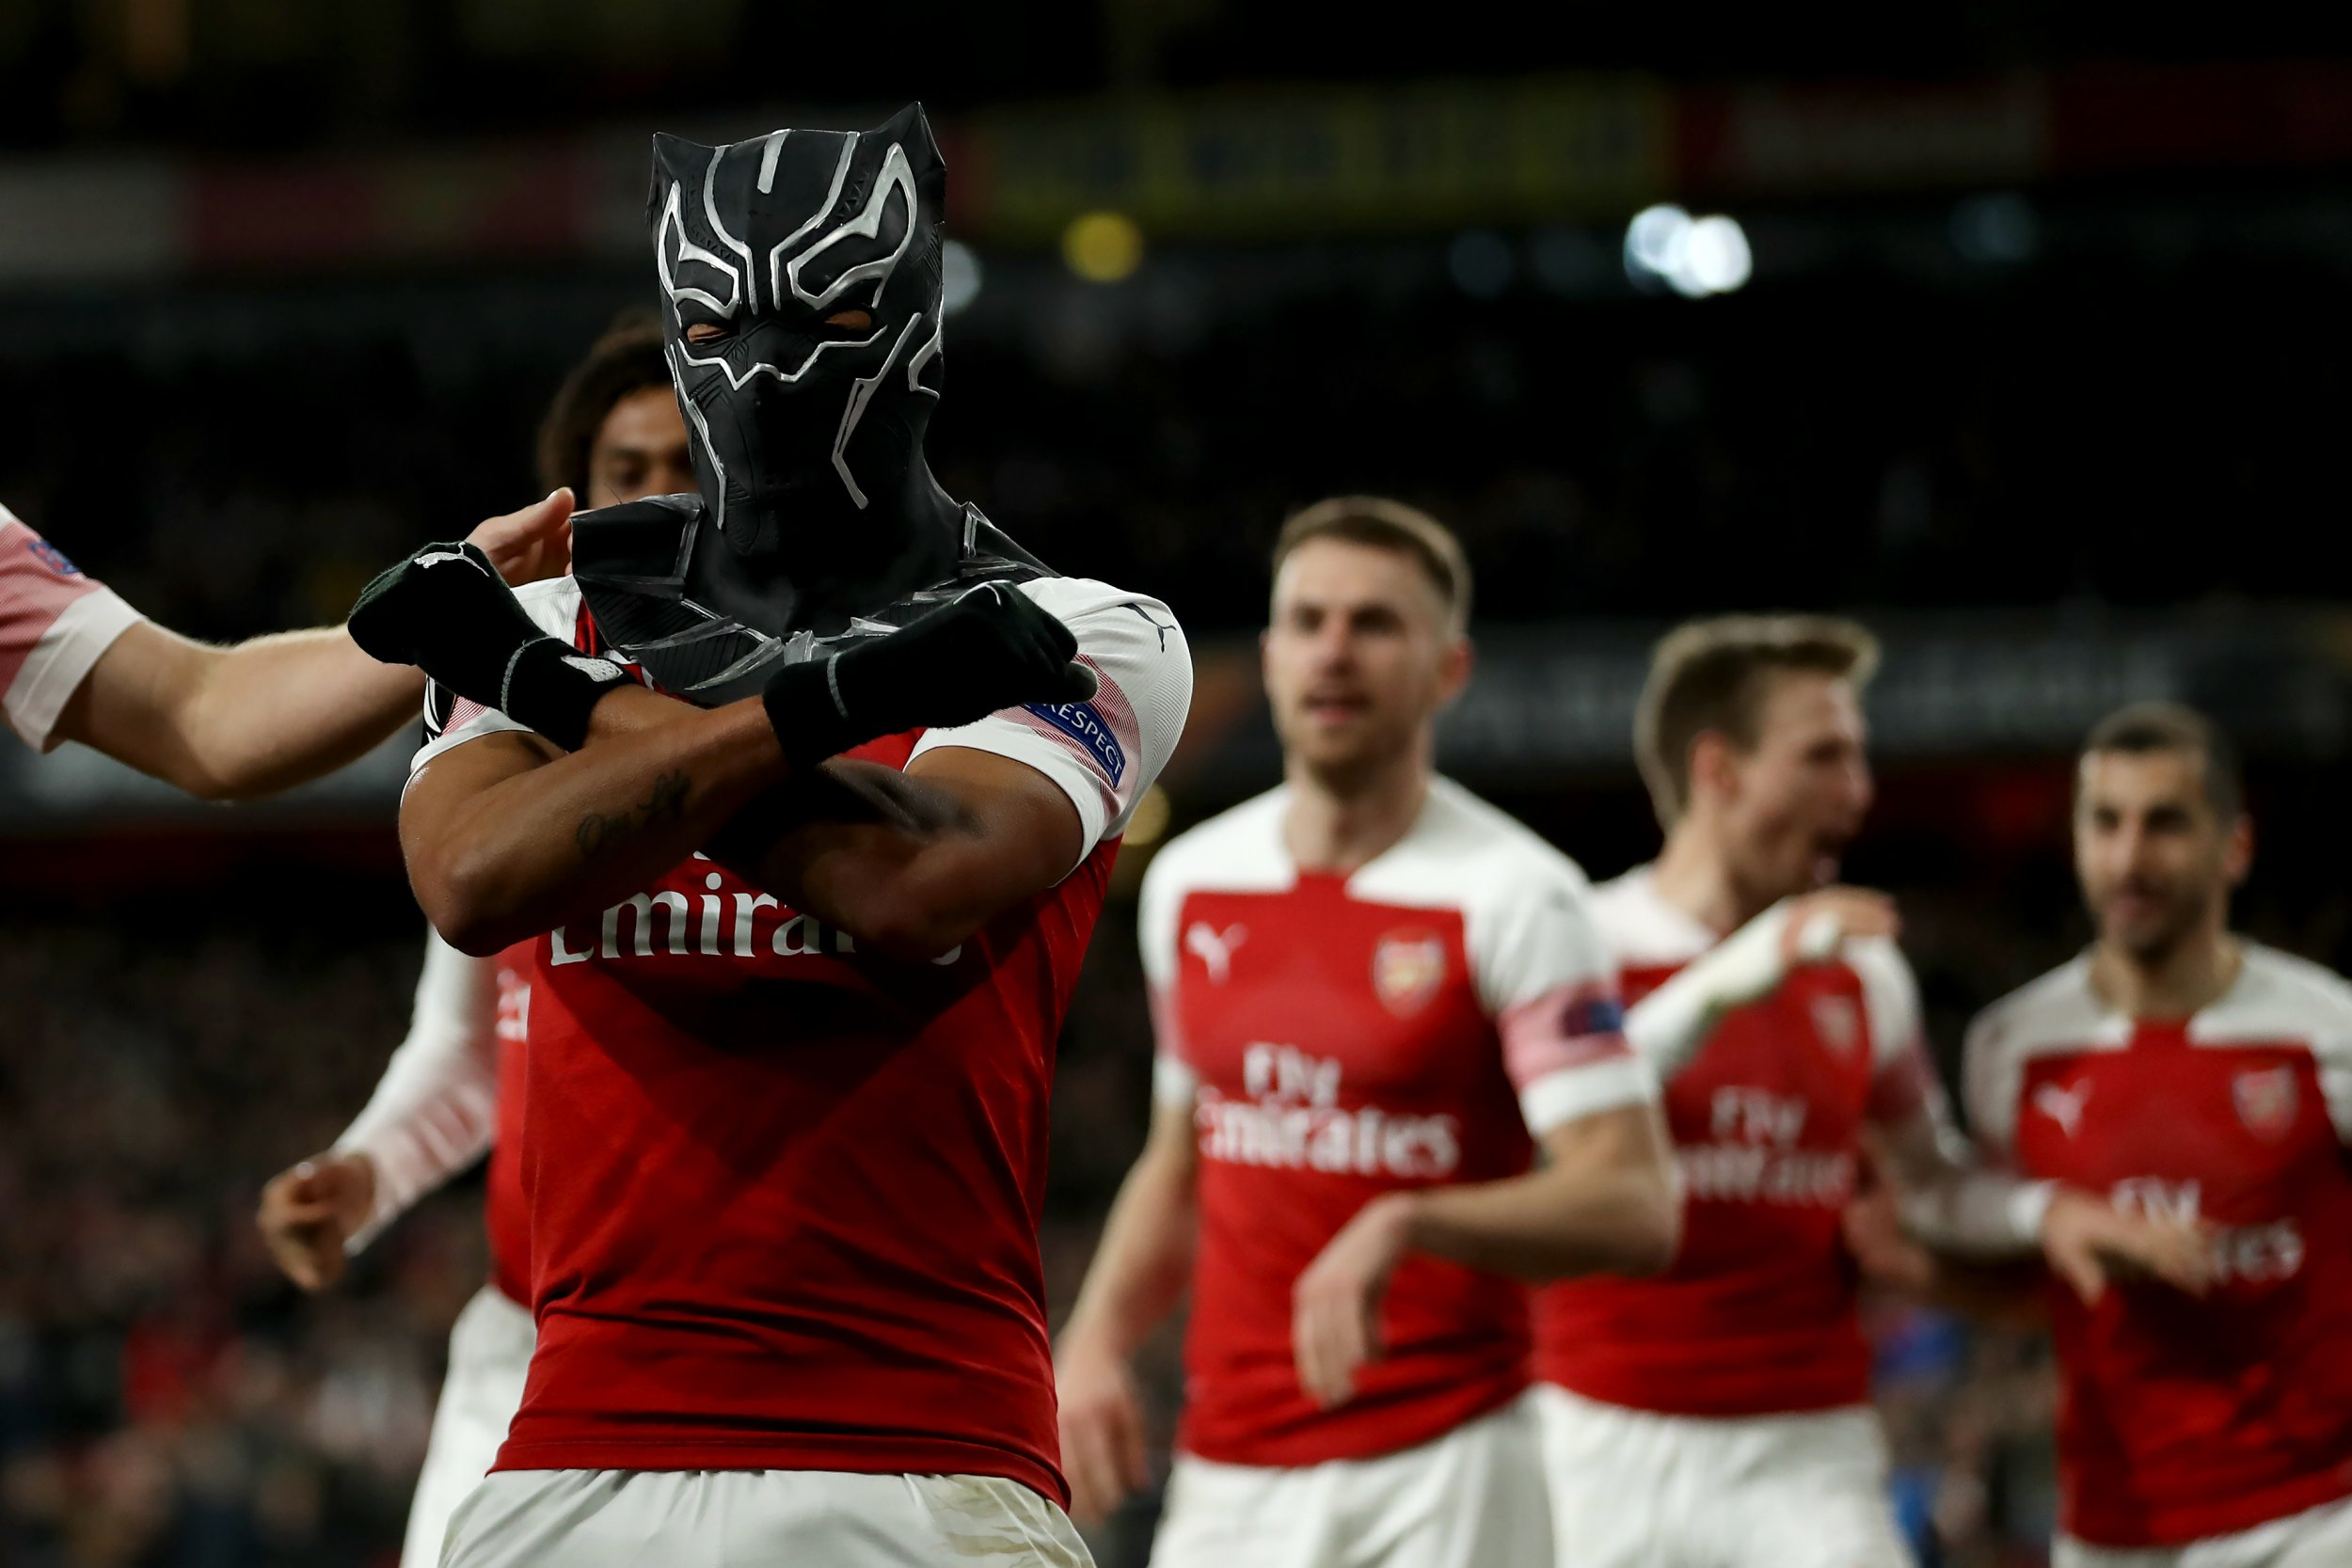 14th March 2019, Emirates Stadium, London, England; UEFA Europa League football, round of 16, second leg, Arsenal versus Rennes; Pierre-Emerick Aubameyang of Arsenal celebrates in a spiderman mask as he scores for 3-0 in the 72nd minute (photo by Shaun Brooks/Action Plus via Getty Images)